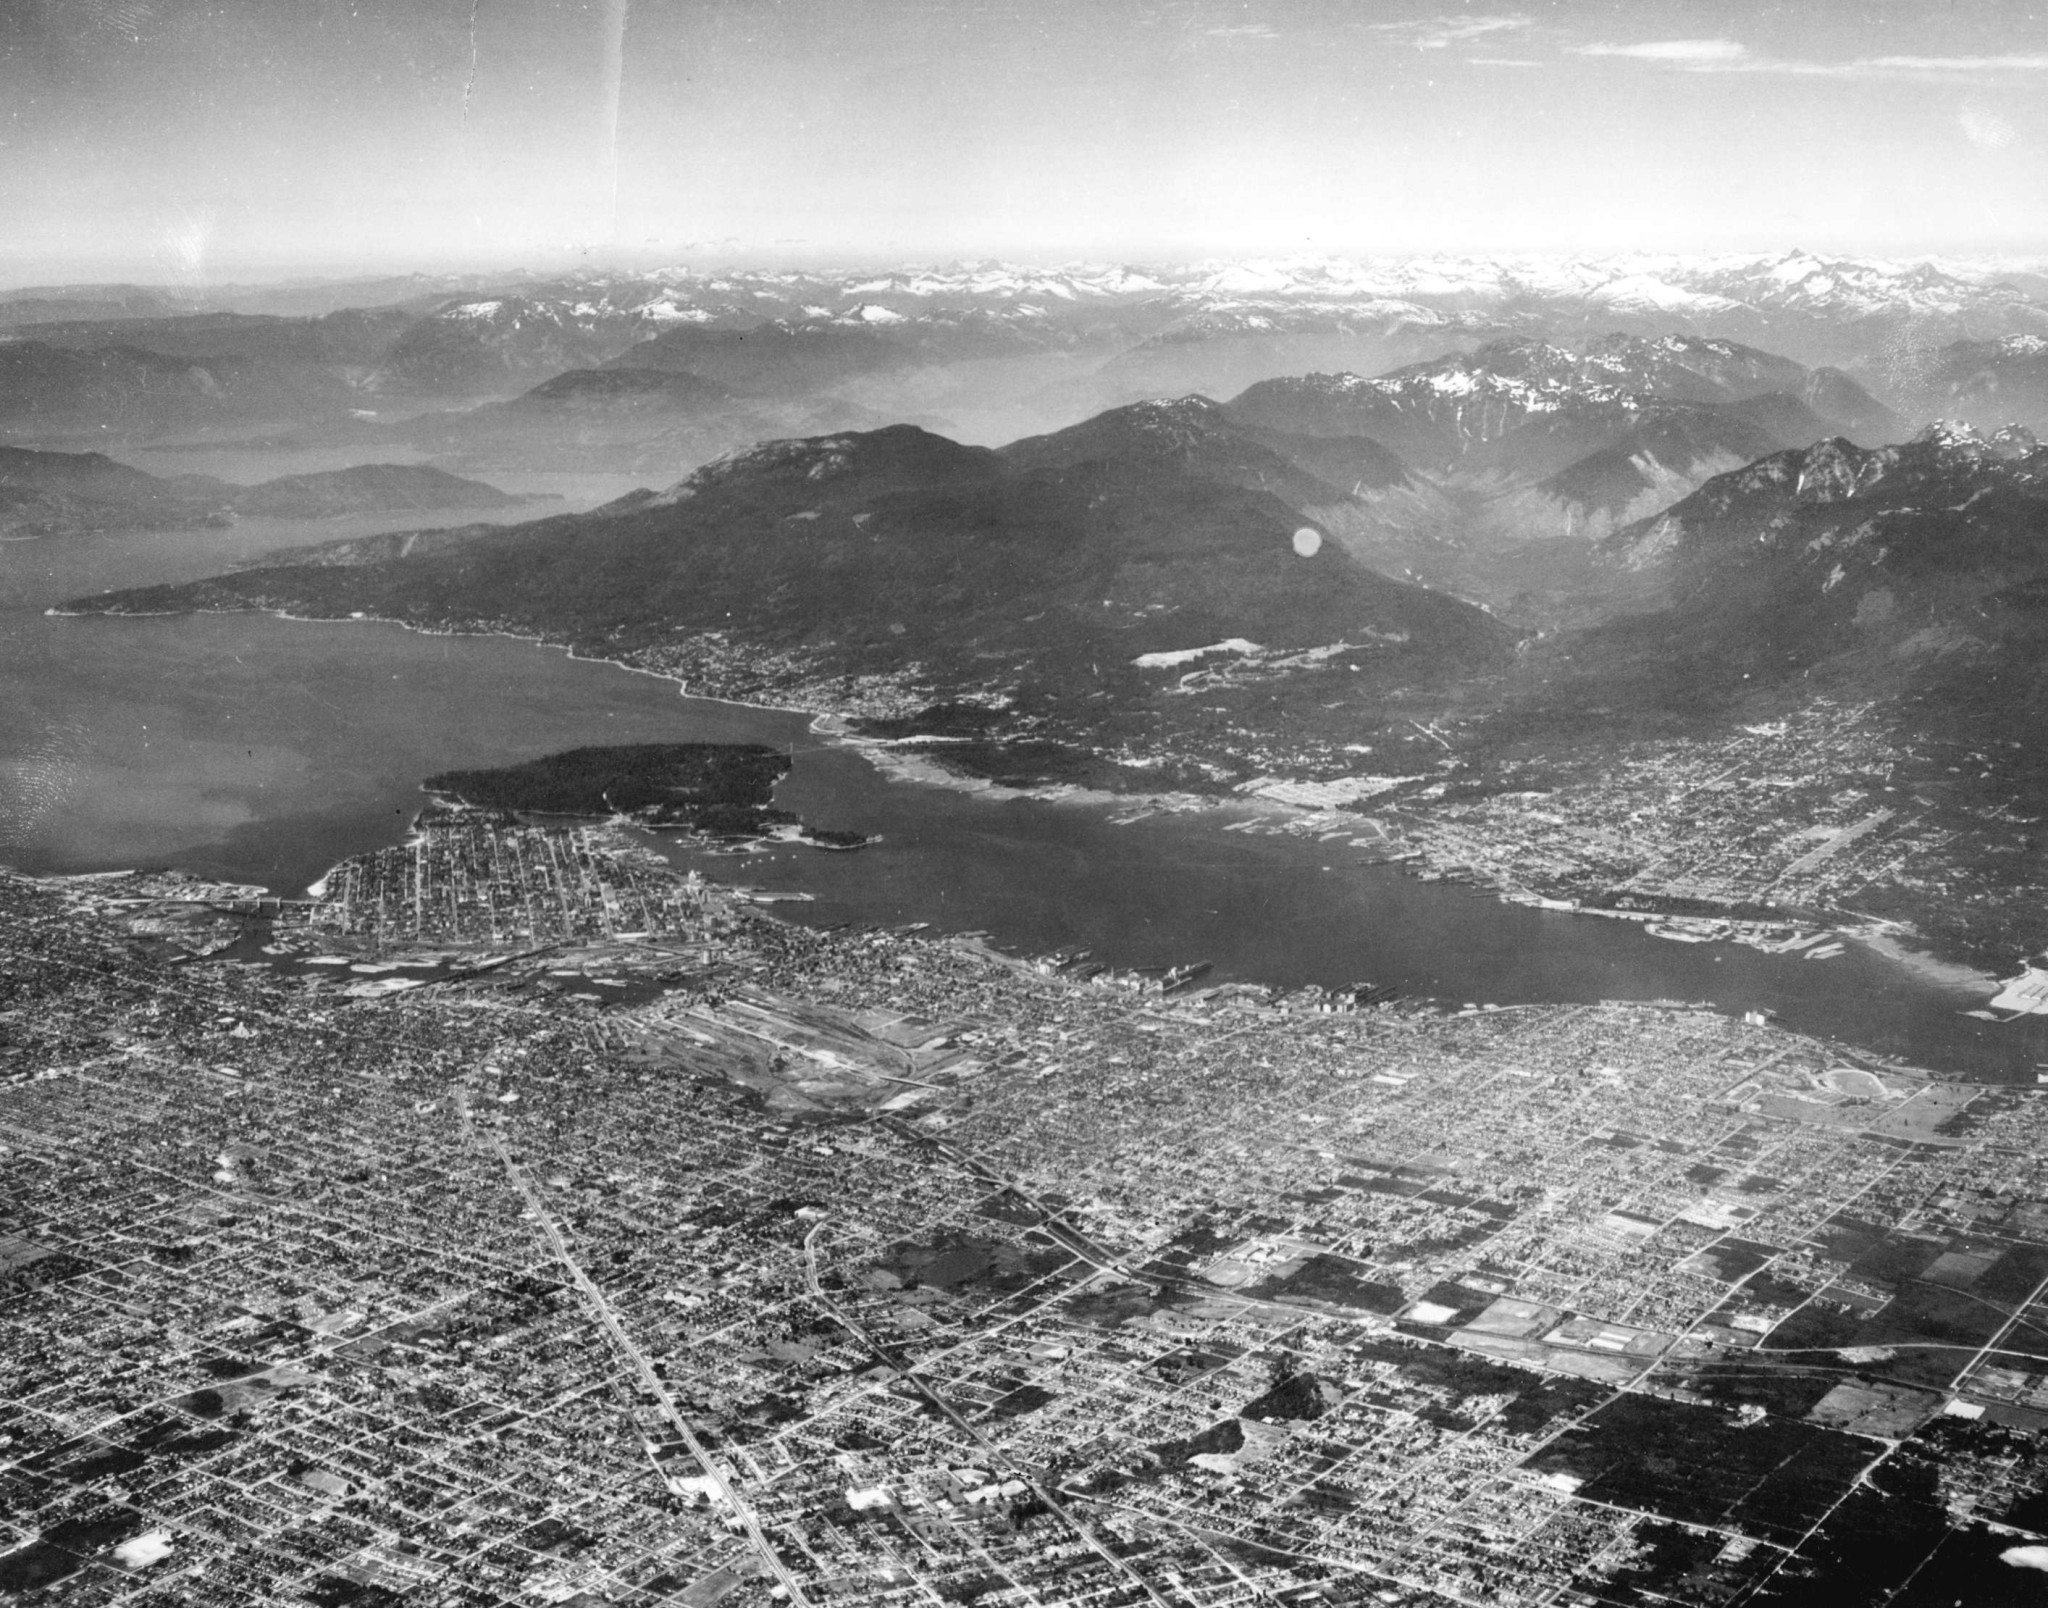 Image: City of Vancouver Archives